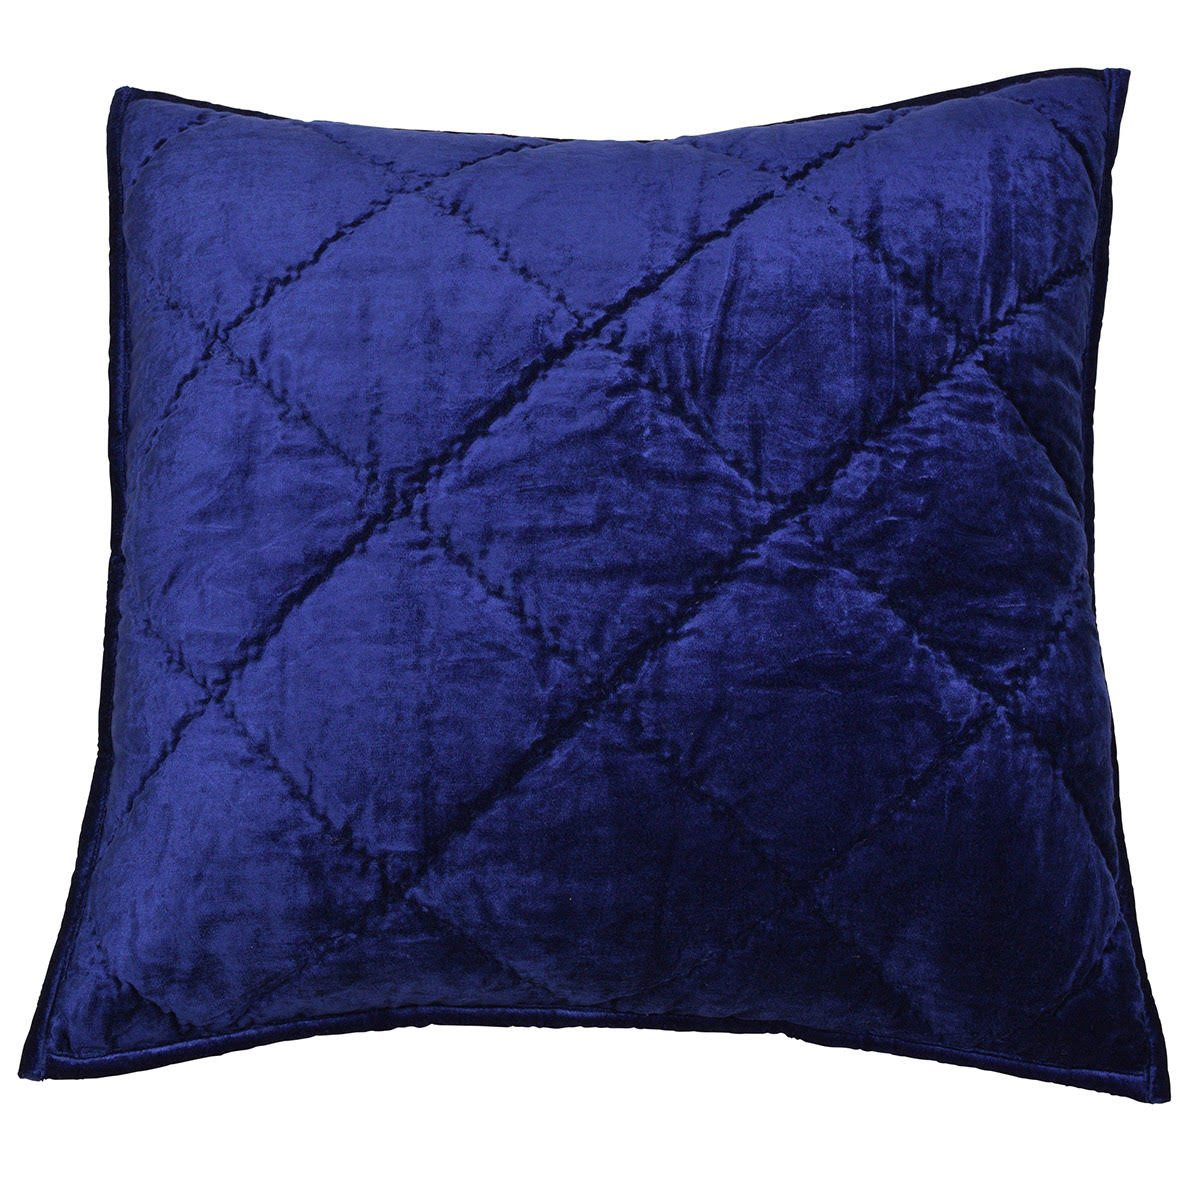 Polished Navy Cushion Cover